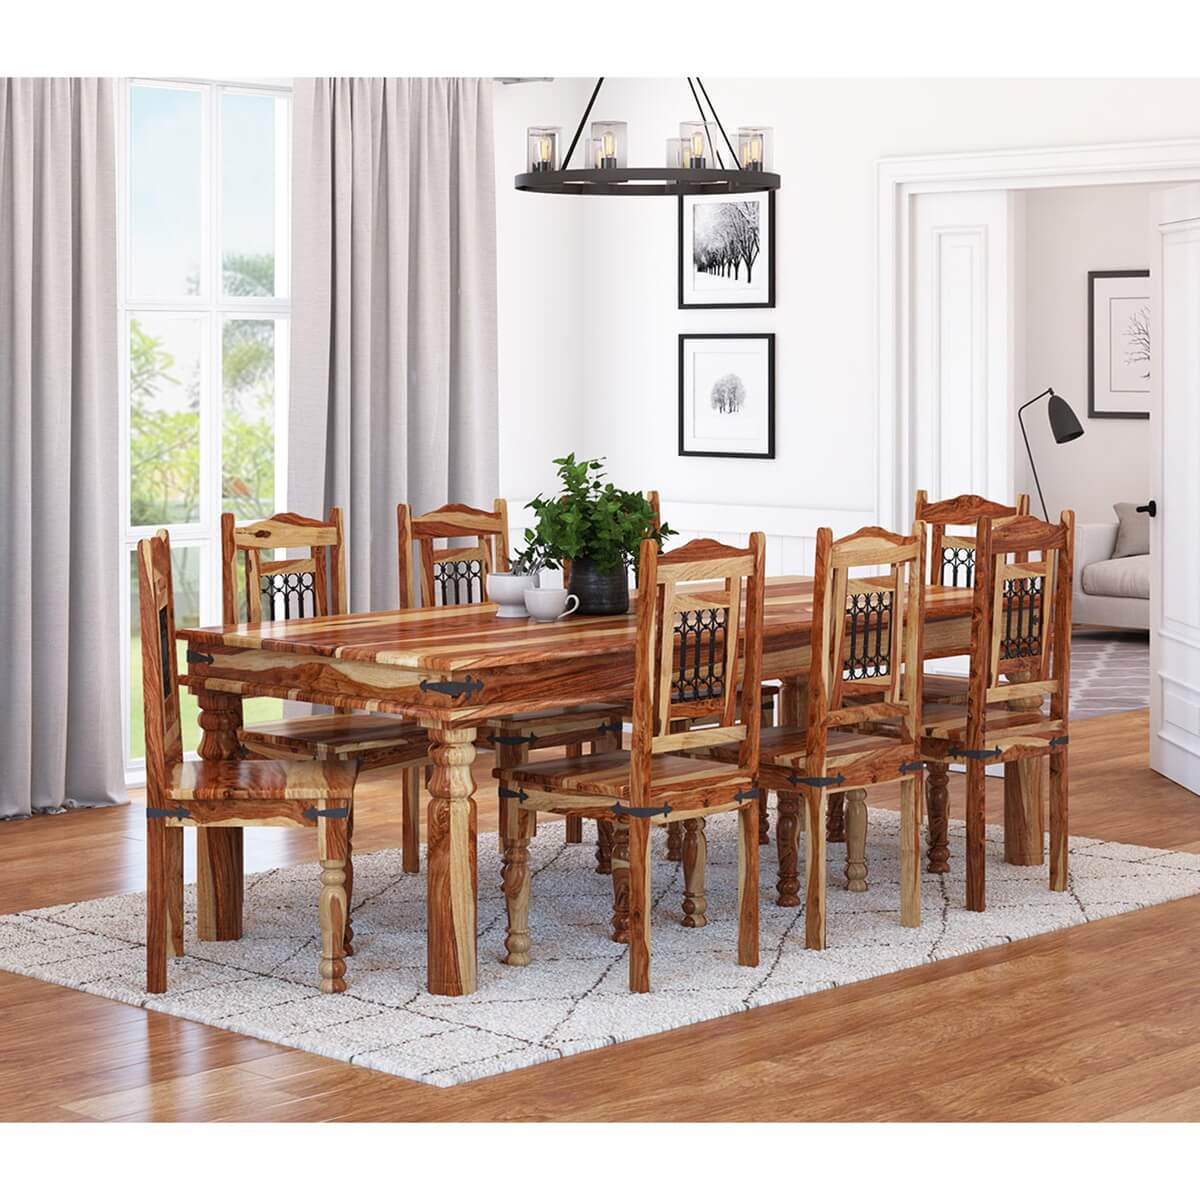 Dallas classic solid wood rustic dining room table and for Table and chair set